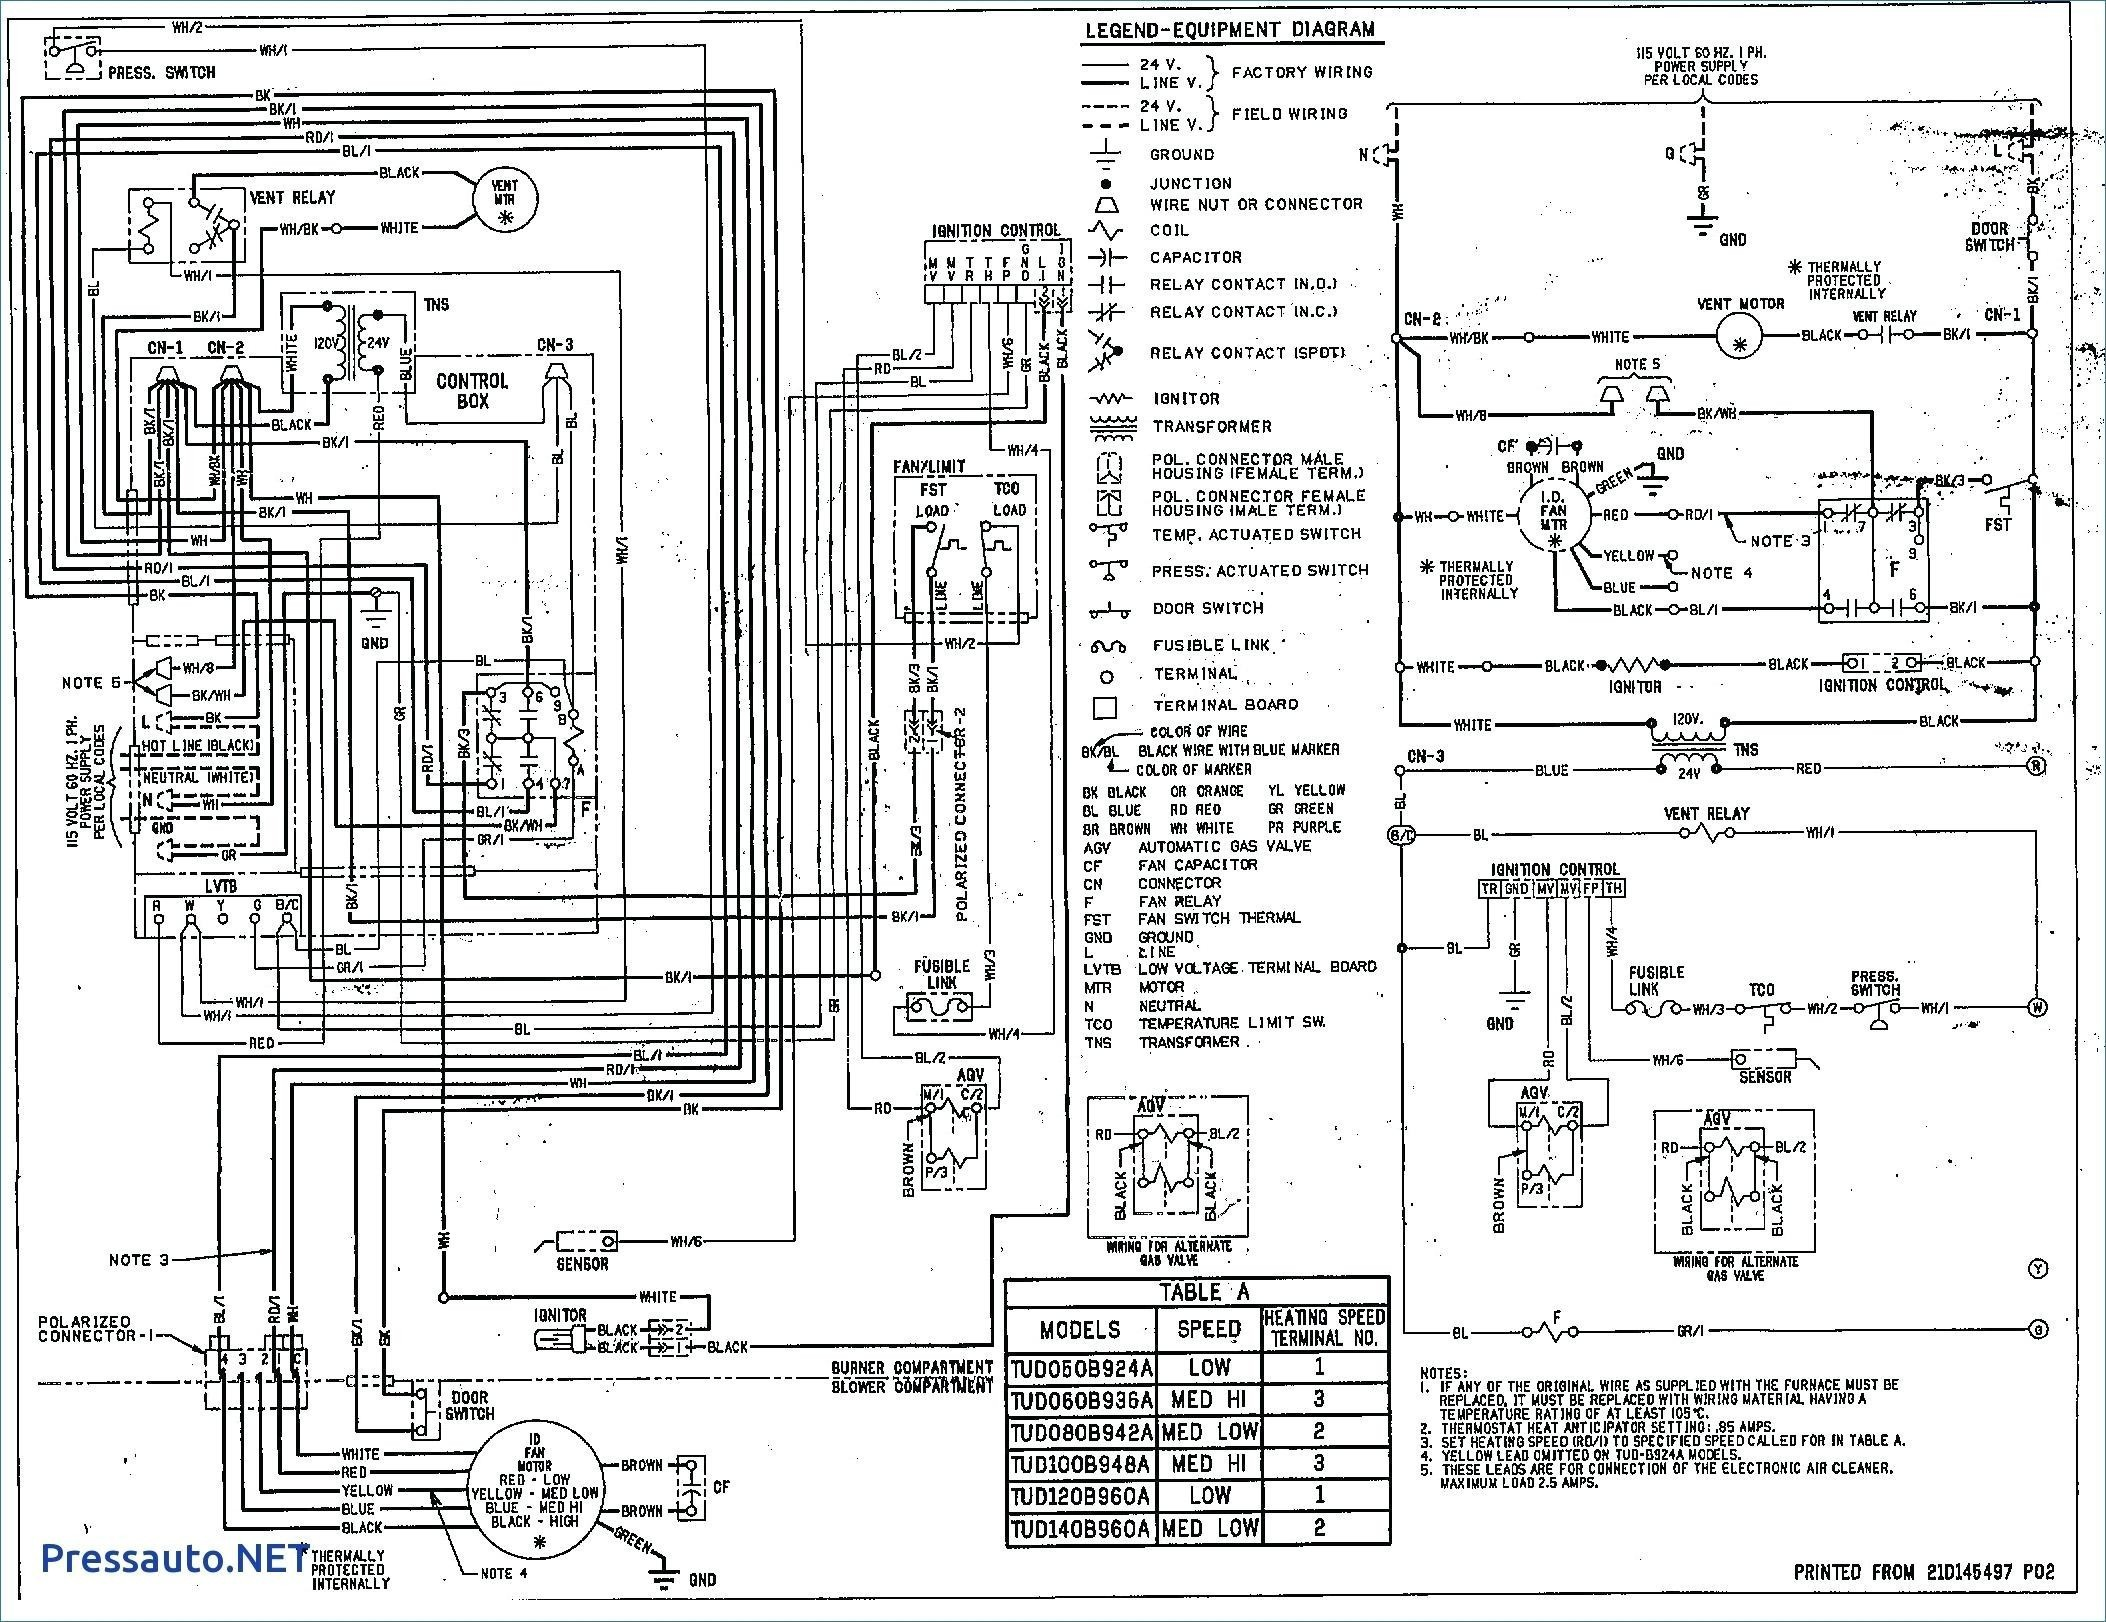 Awesome Trane Xe1000 Wiring Diagram | Wiring Diagram Image on